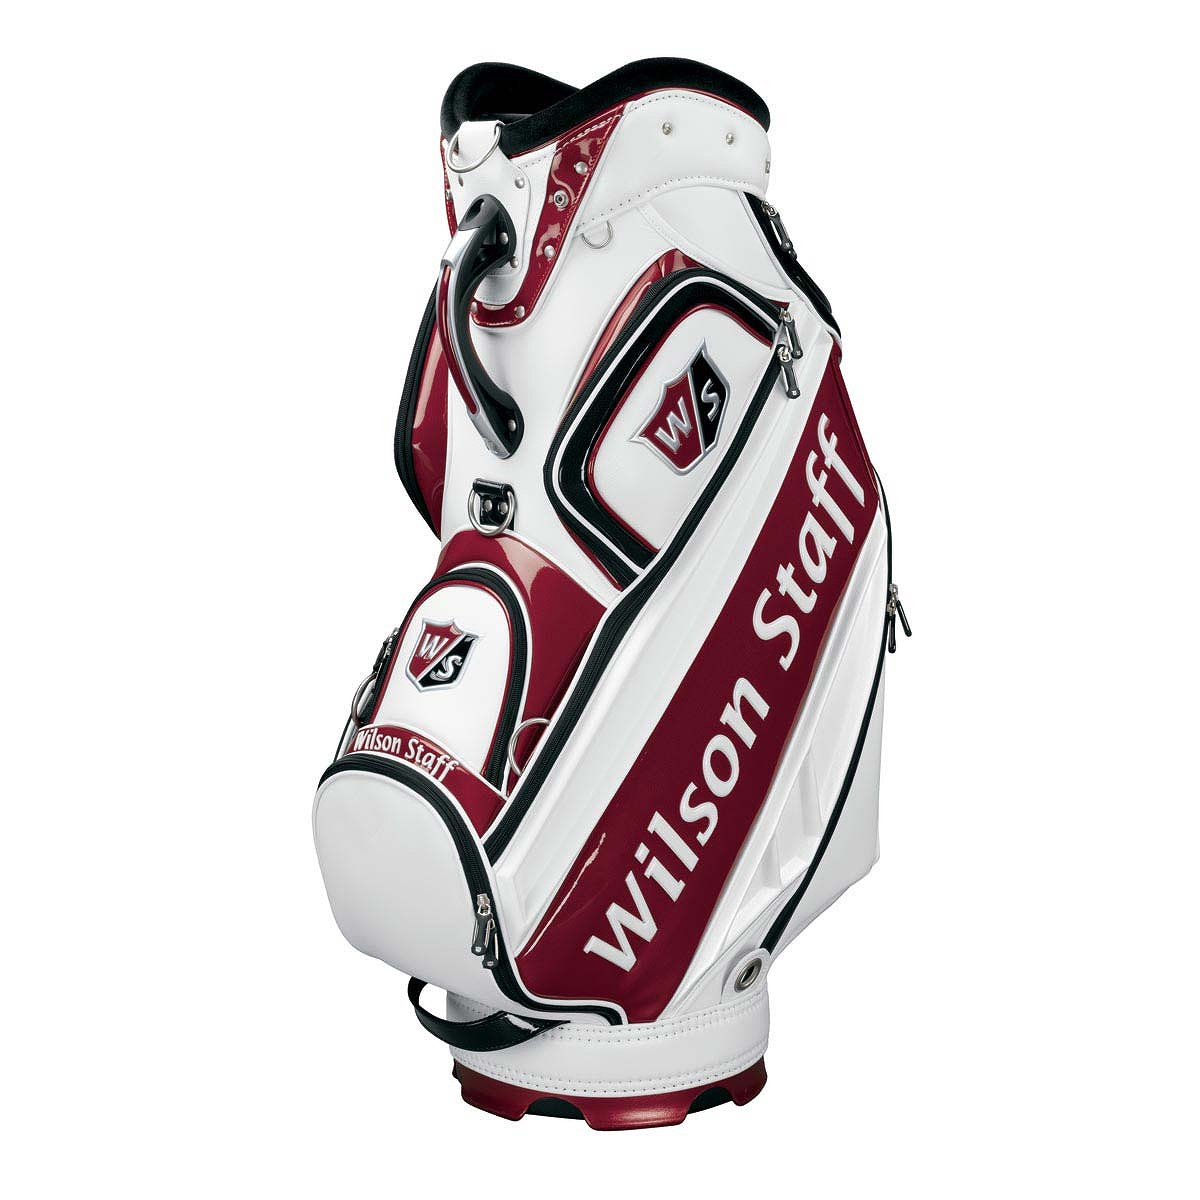 Wilson Staff Pro Tour Golf Cart Bag | Wilson Golf